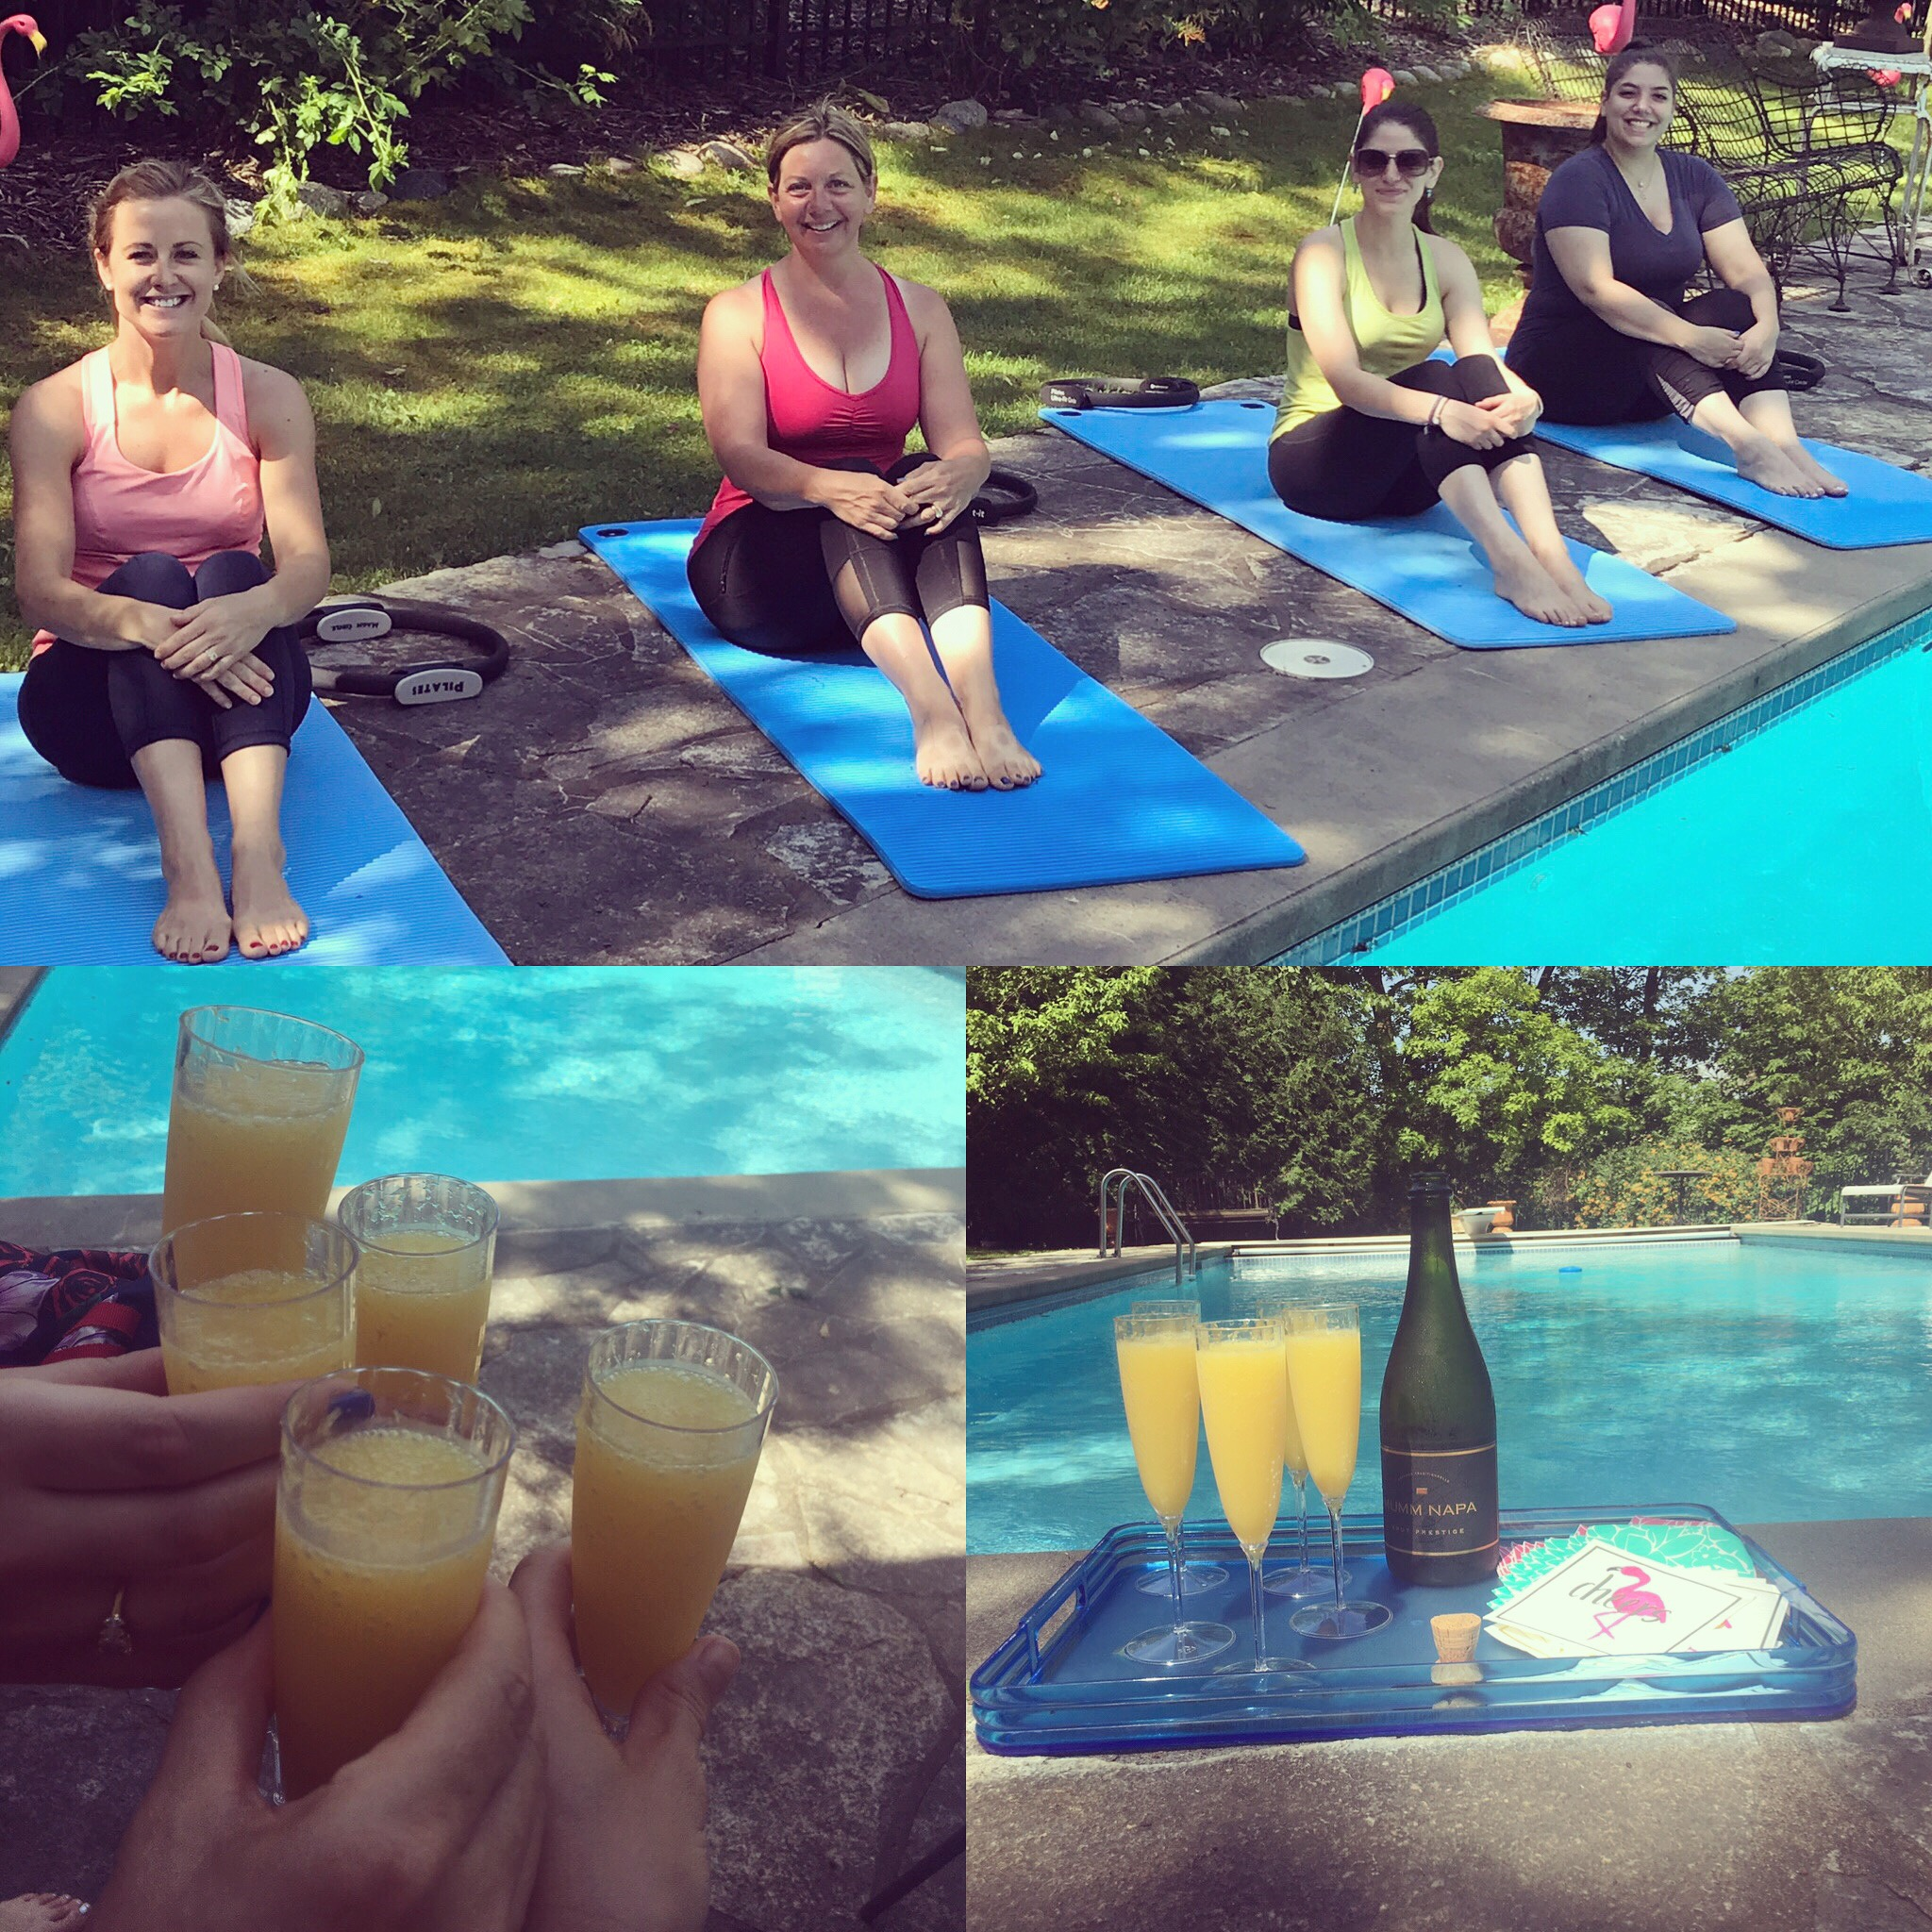 cheers to summer mat class by the pool at mogo pilates!